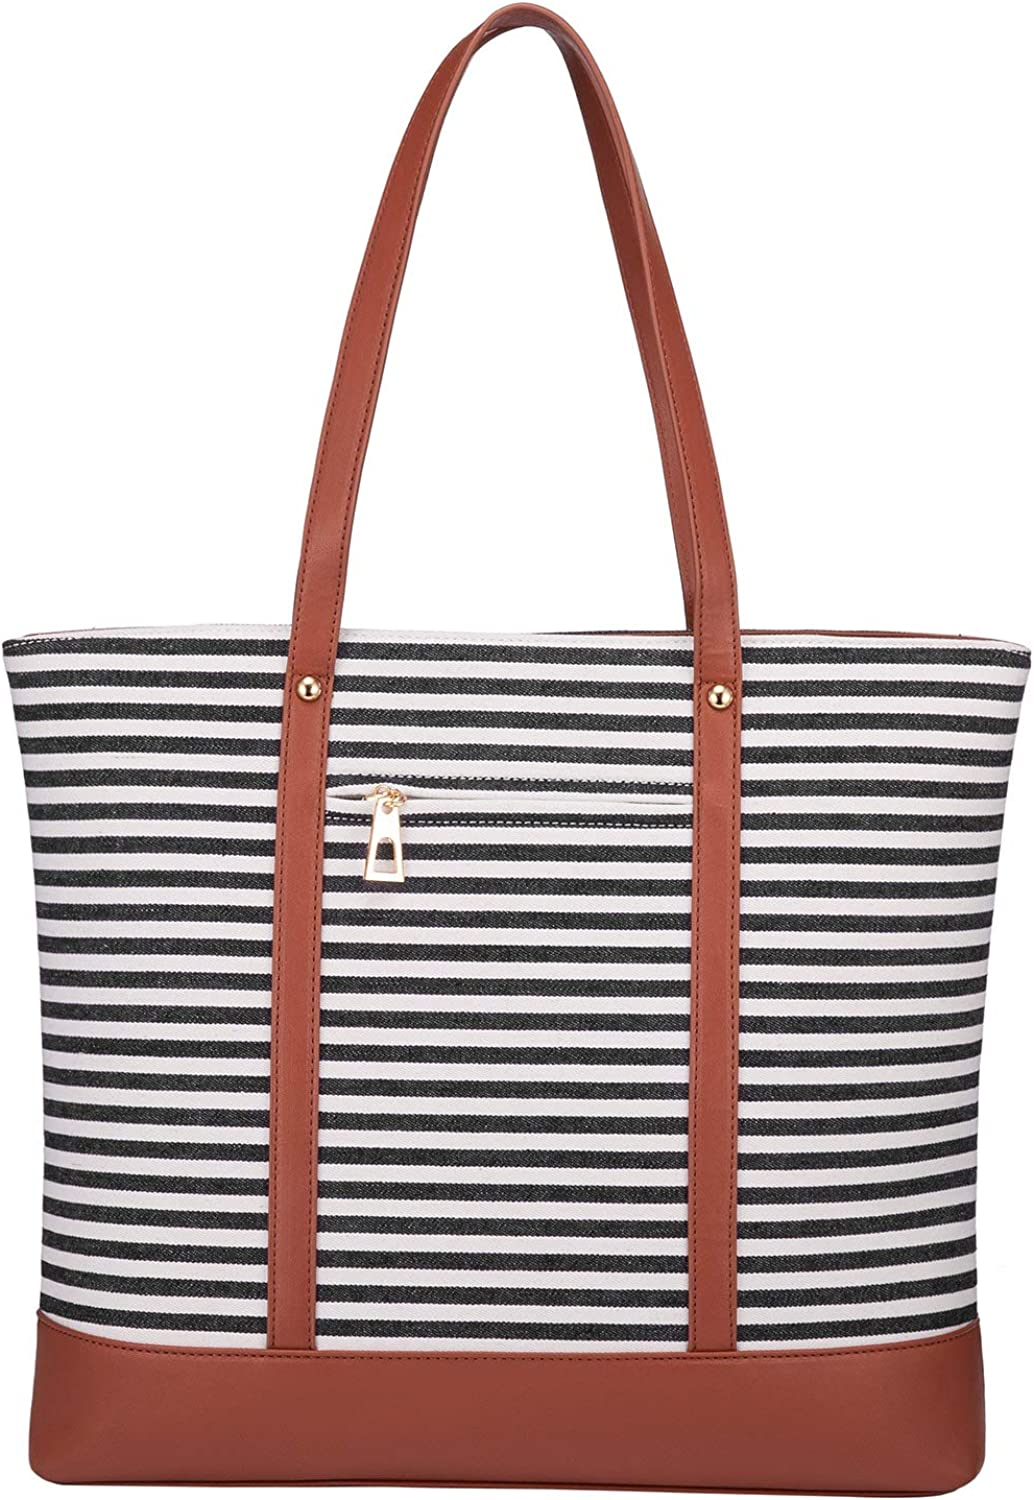 LOVEVOOK Tote Bag for Women Canvas Purses and Handbags Travel and Work Shoulder Bag Beach Top Handle Satchel